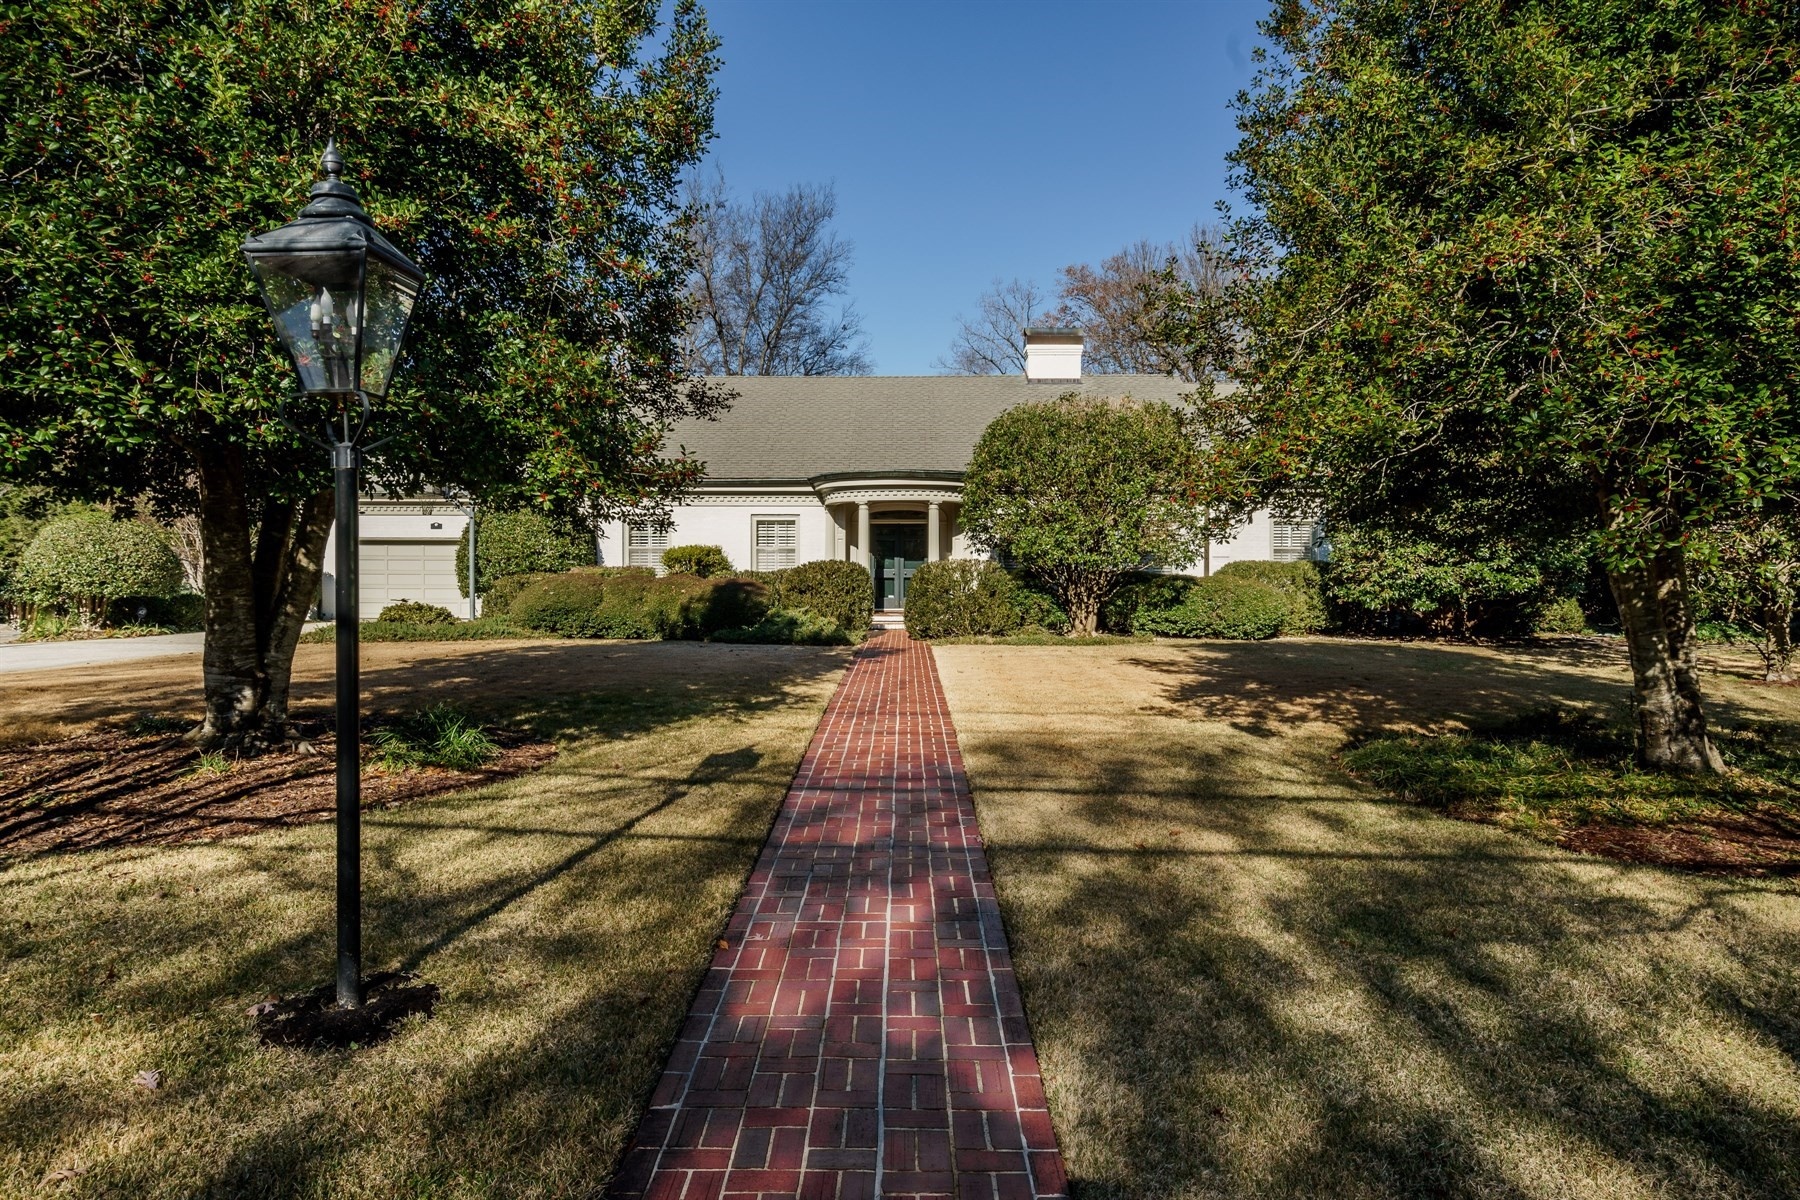 Single Family Home for Sale at Classic One Level Ranch Inside the Beltline 2415 Anderson Drive, Raleigh, North Carolina 27608 United States